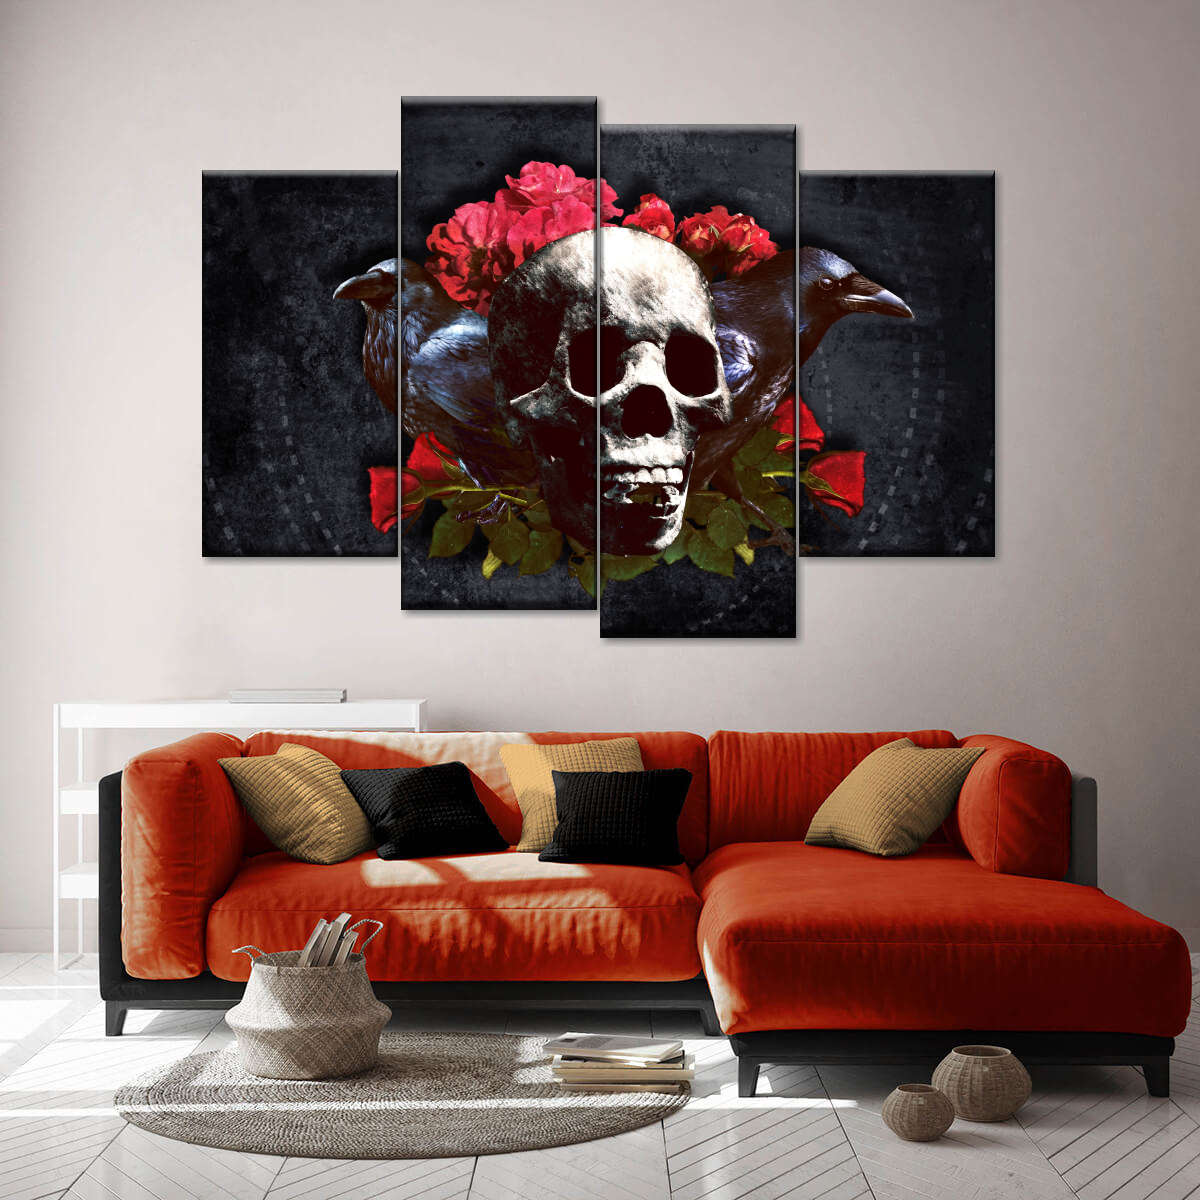 Skull Kitchen Still Life Picture CANVAS WALL ART Four Panel